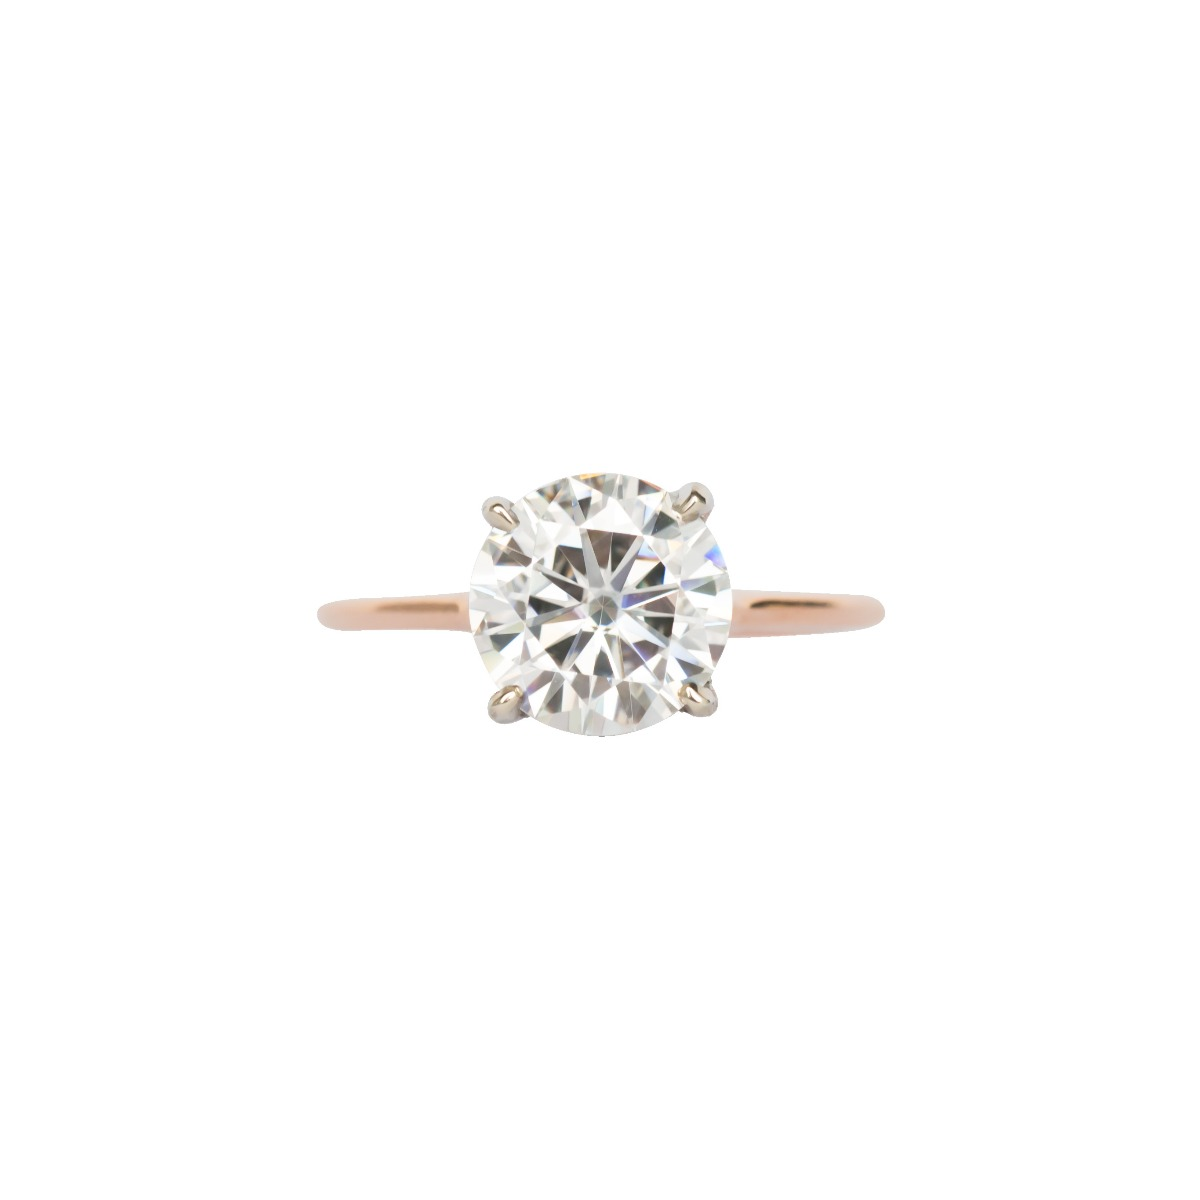 DBK Classic Solitaire Setting With Diamond Basket & Bridge In Two Tone